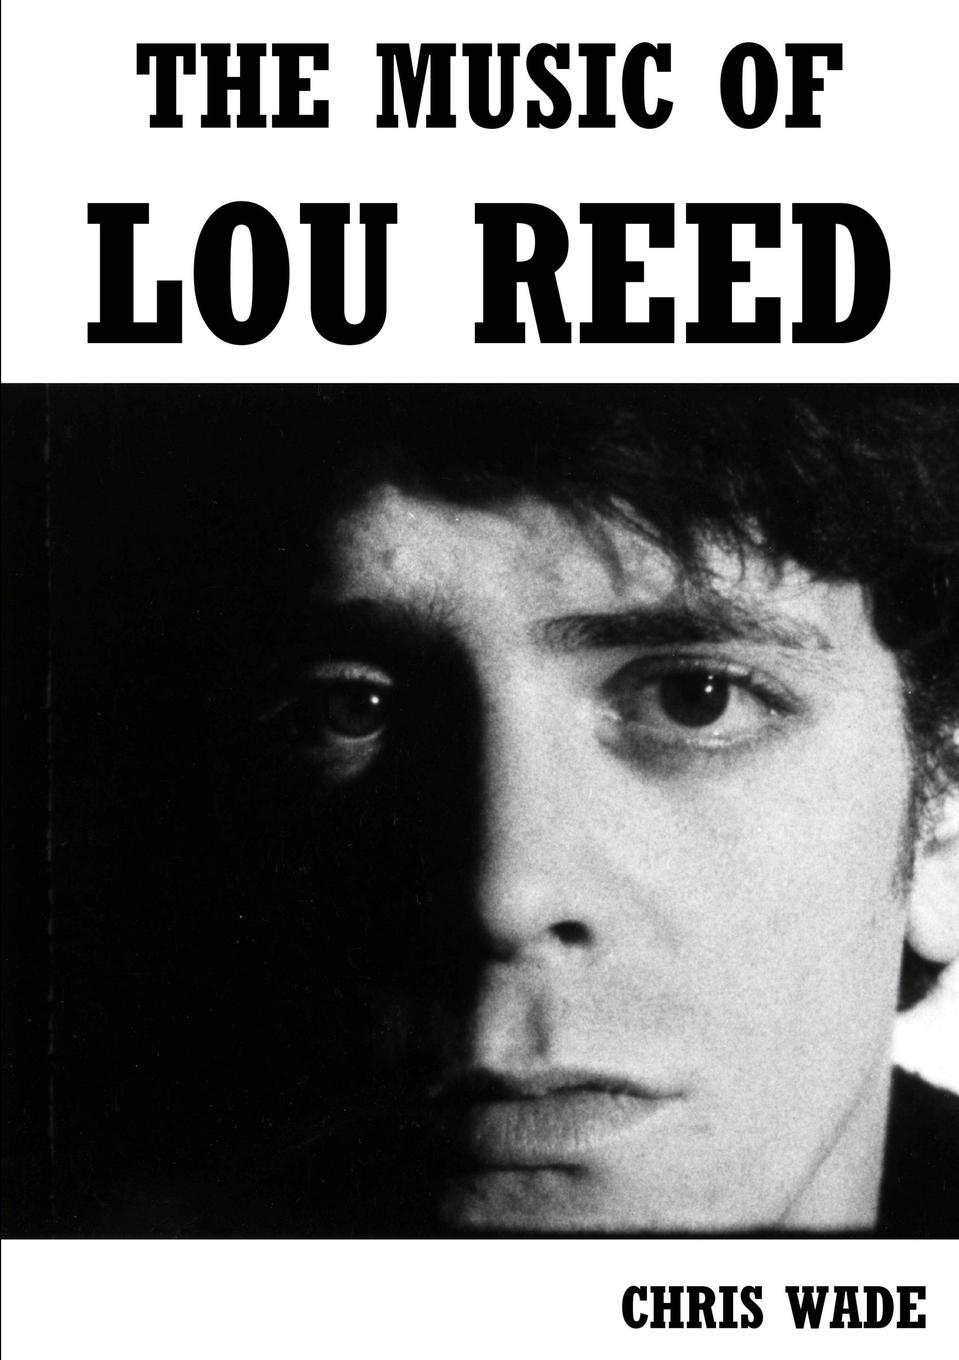 chris wade The Music of Lou Reed lou reed lou reed berlin